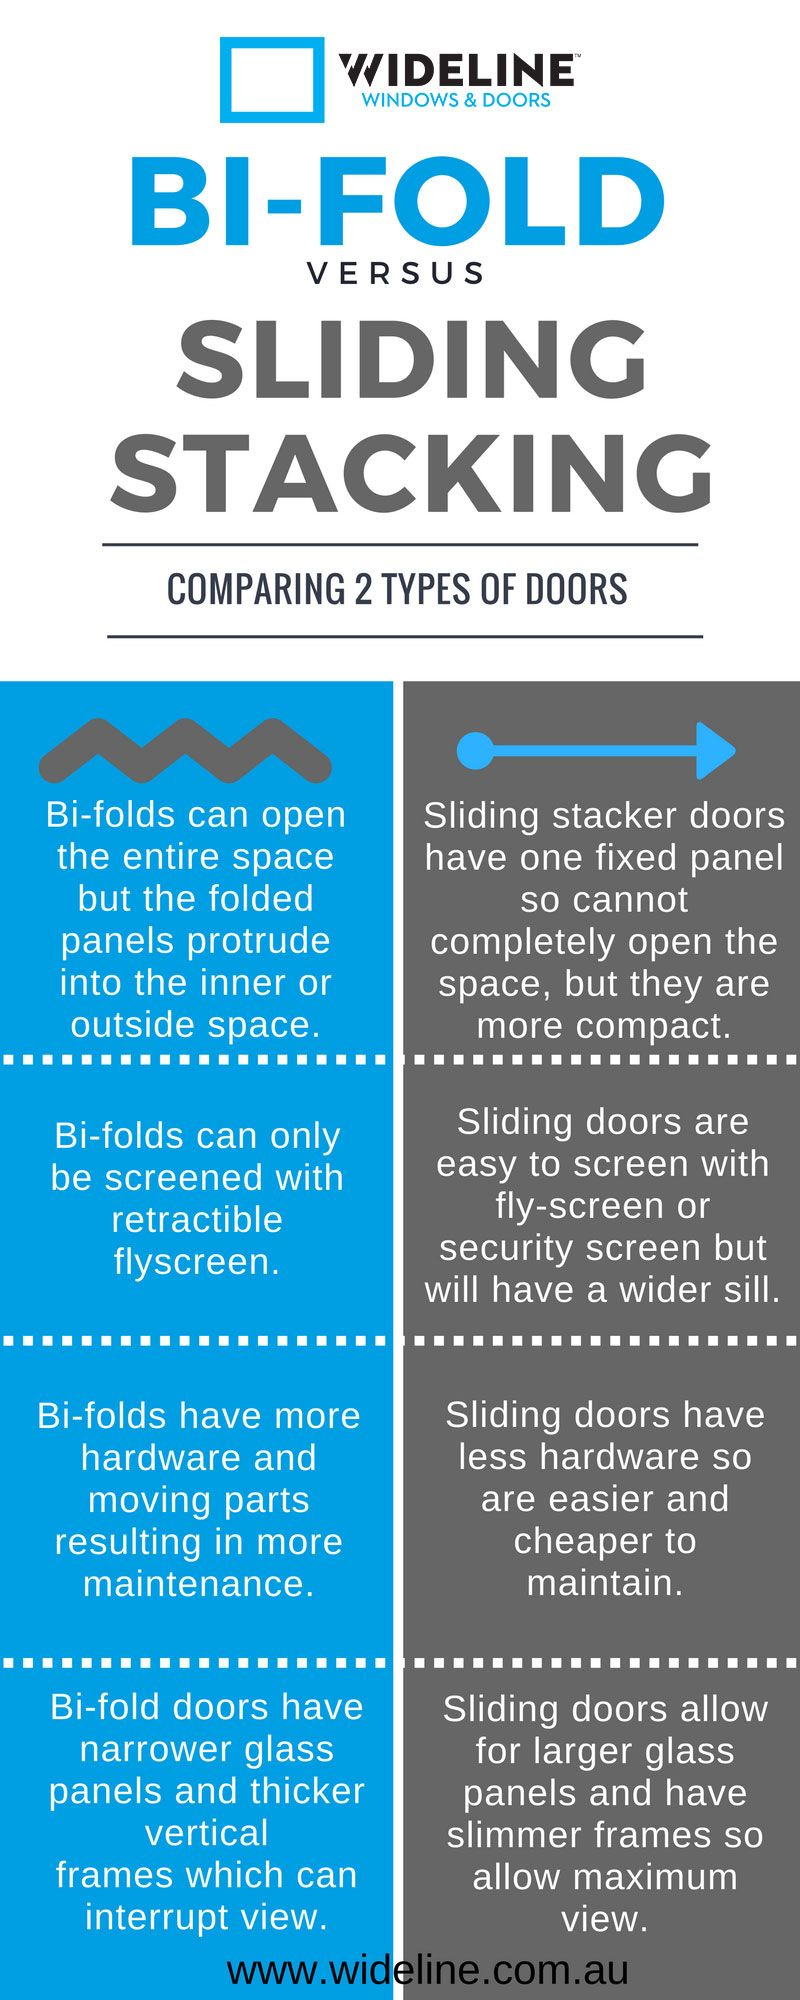 How do you choose between a bi-fold door or a sliding stacking door? . wideline.com.au  sc 1 st  Pinterest & How do you choose between a bi-fold door or a sliding stacking door ...